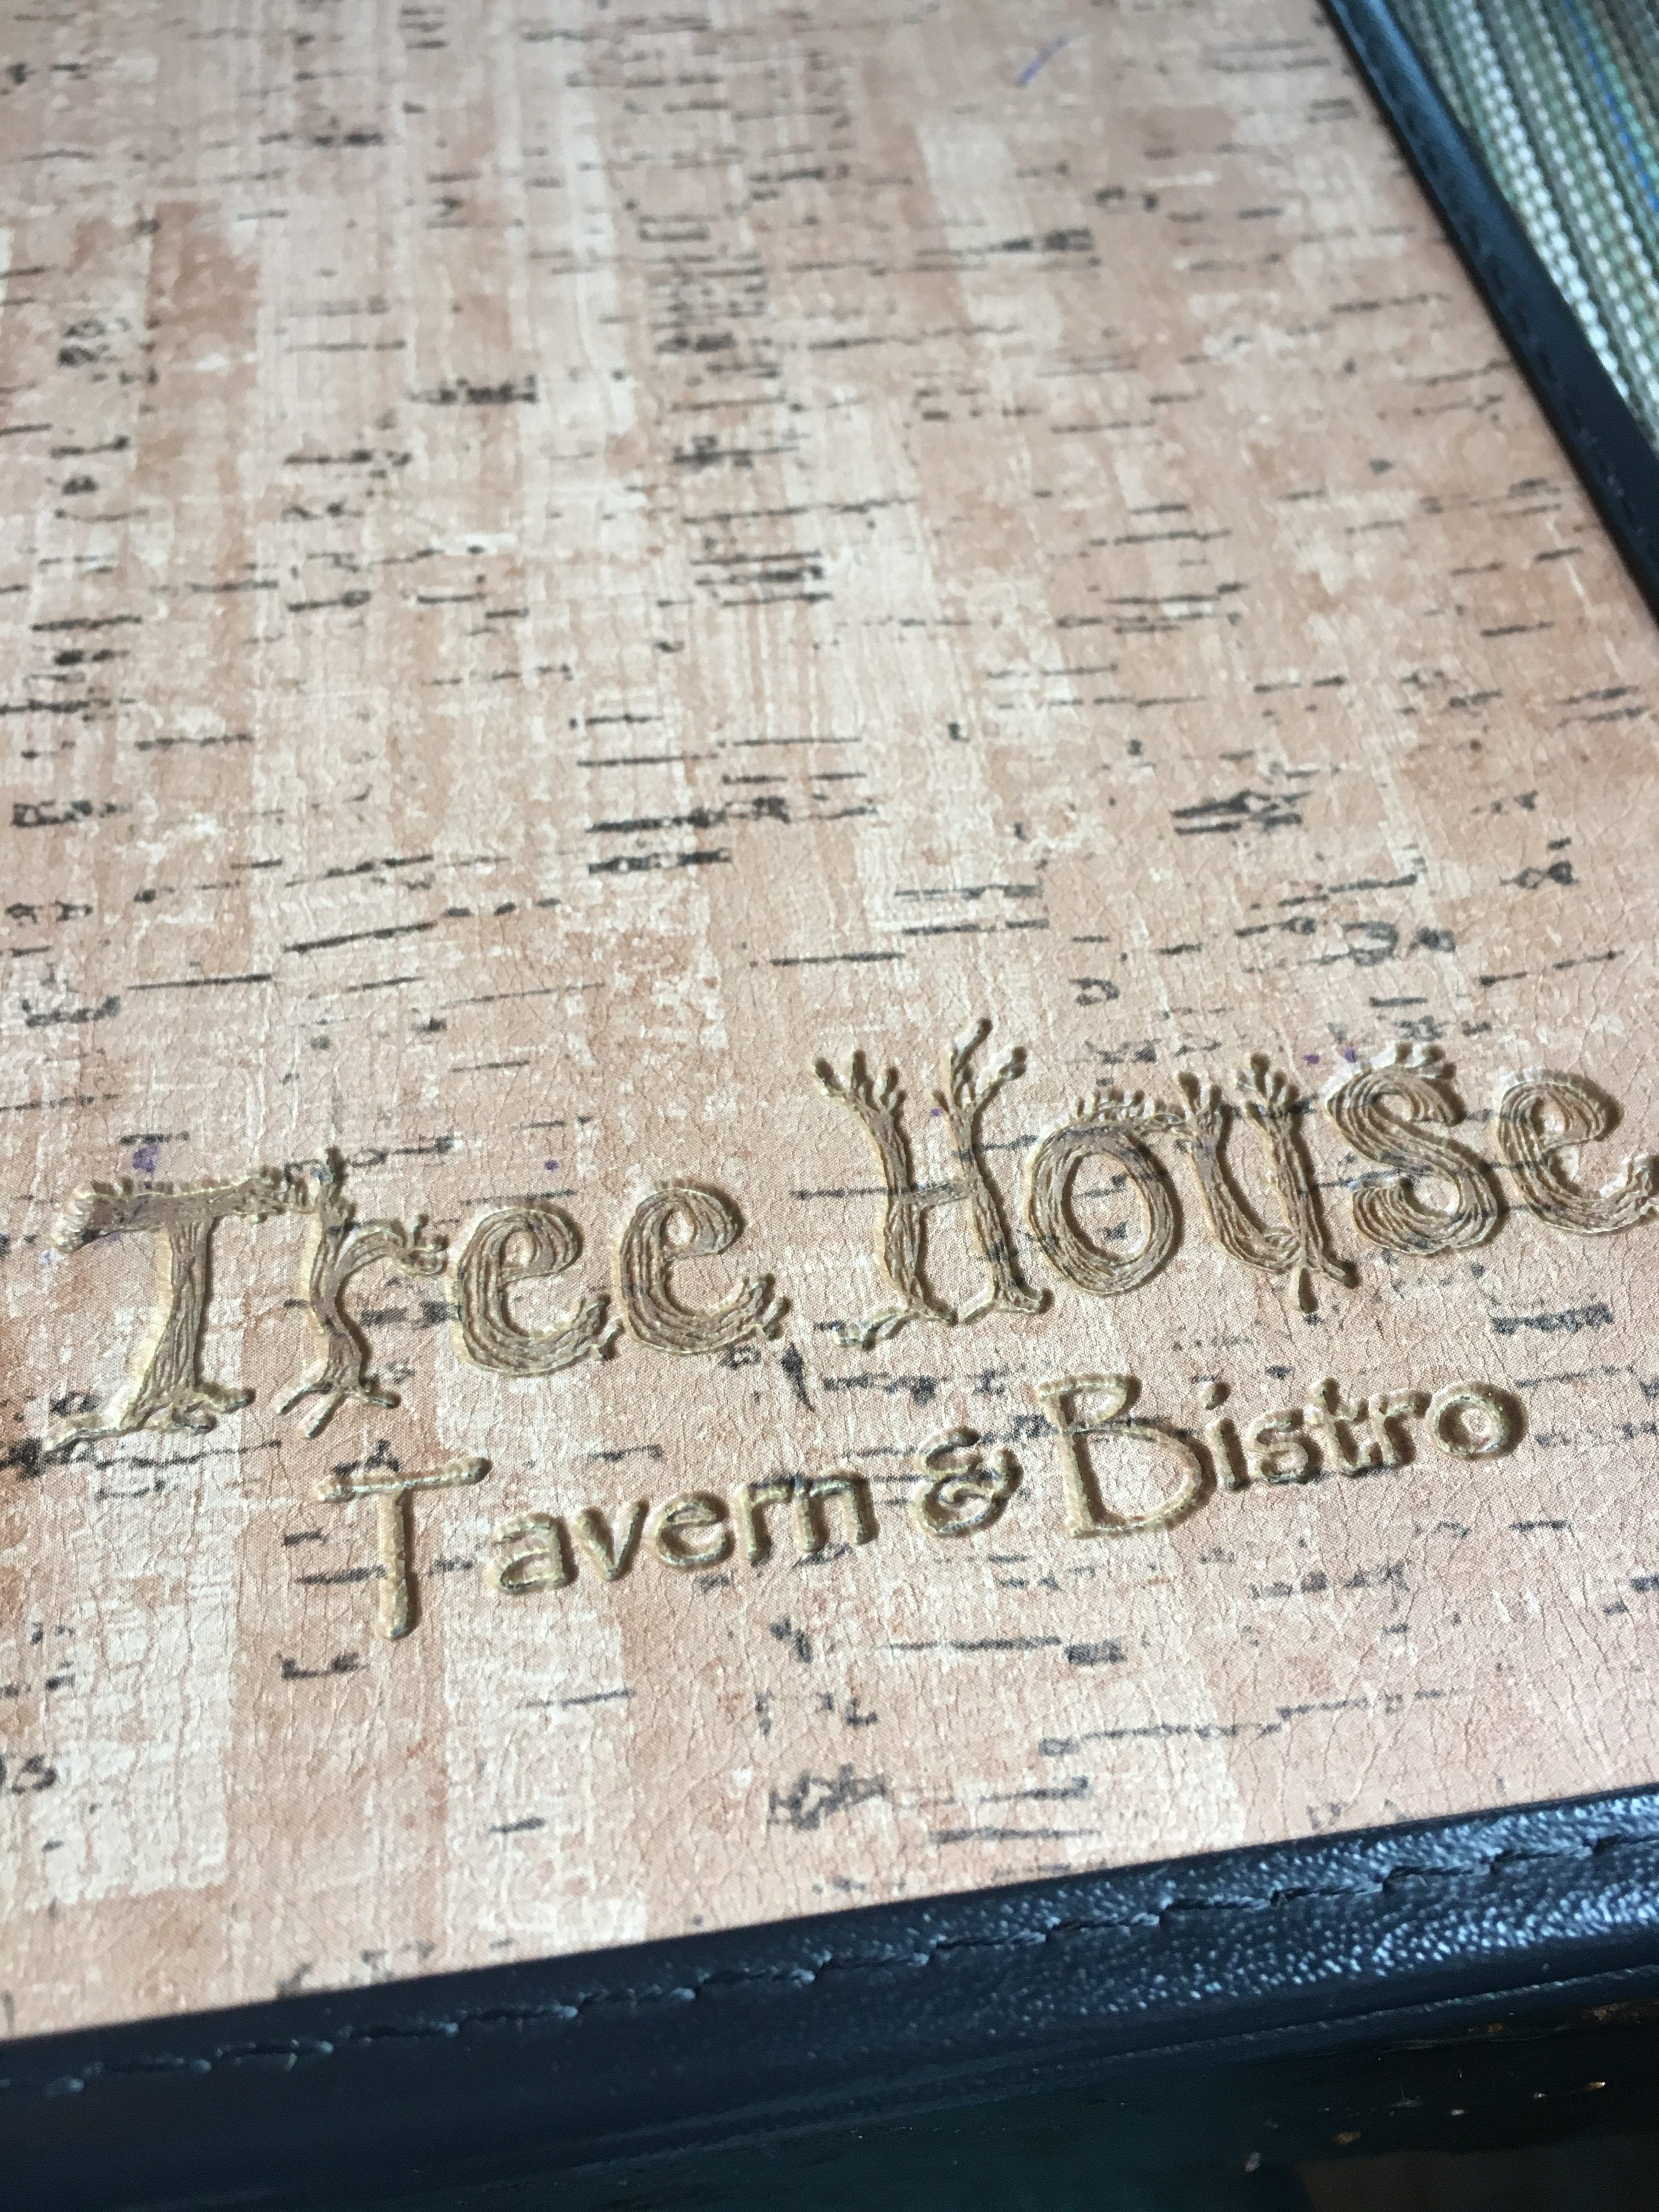 The Blogetarian's Review The Tree House Tavern & Bistro